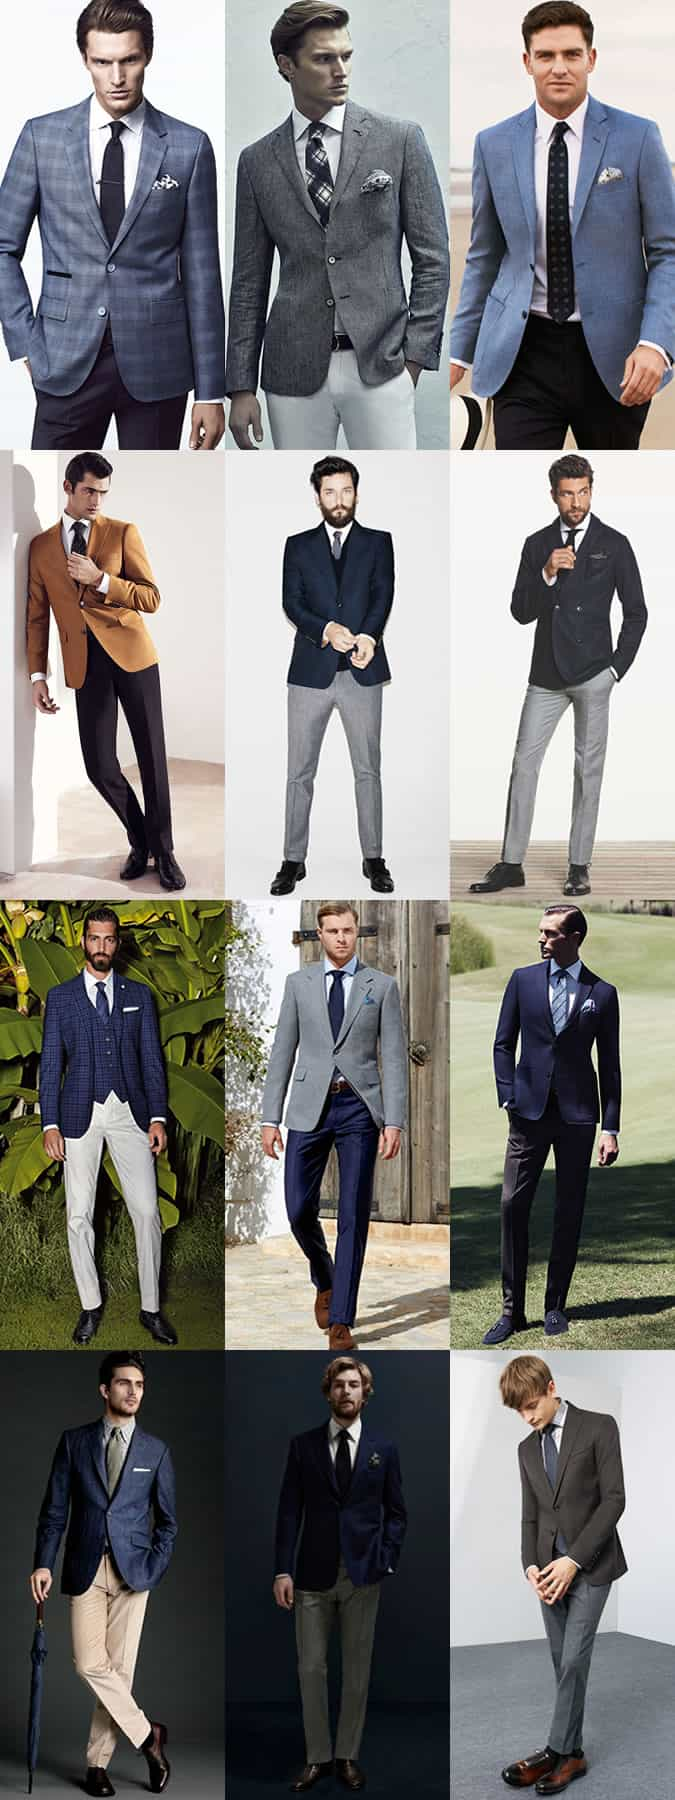 Men's Groom Wedding Outfit Inspiration Lookbook - Smart-Casual and Suit Separates